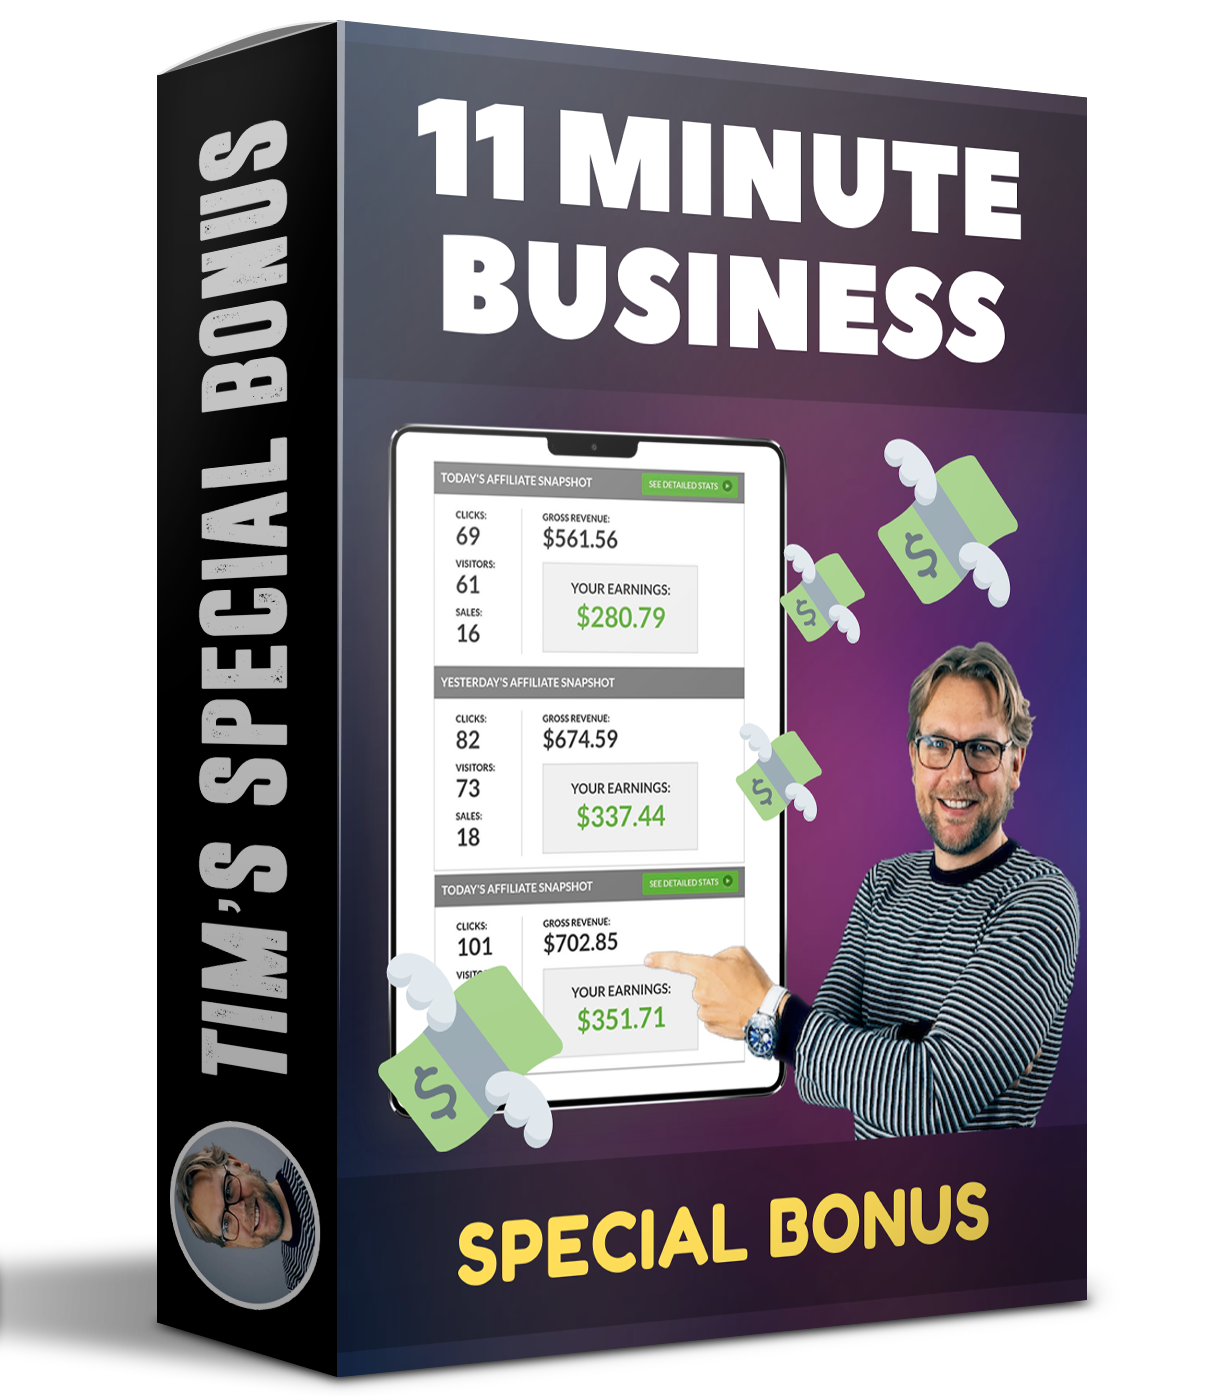 11 minute business